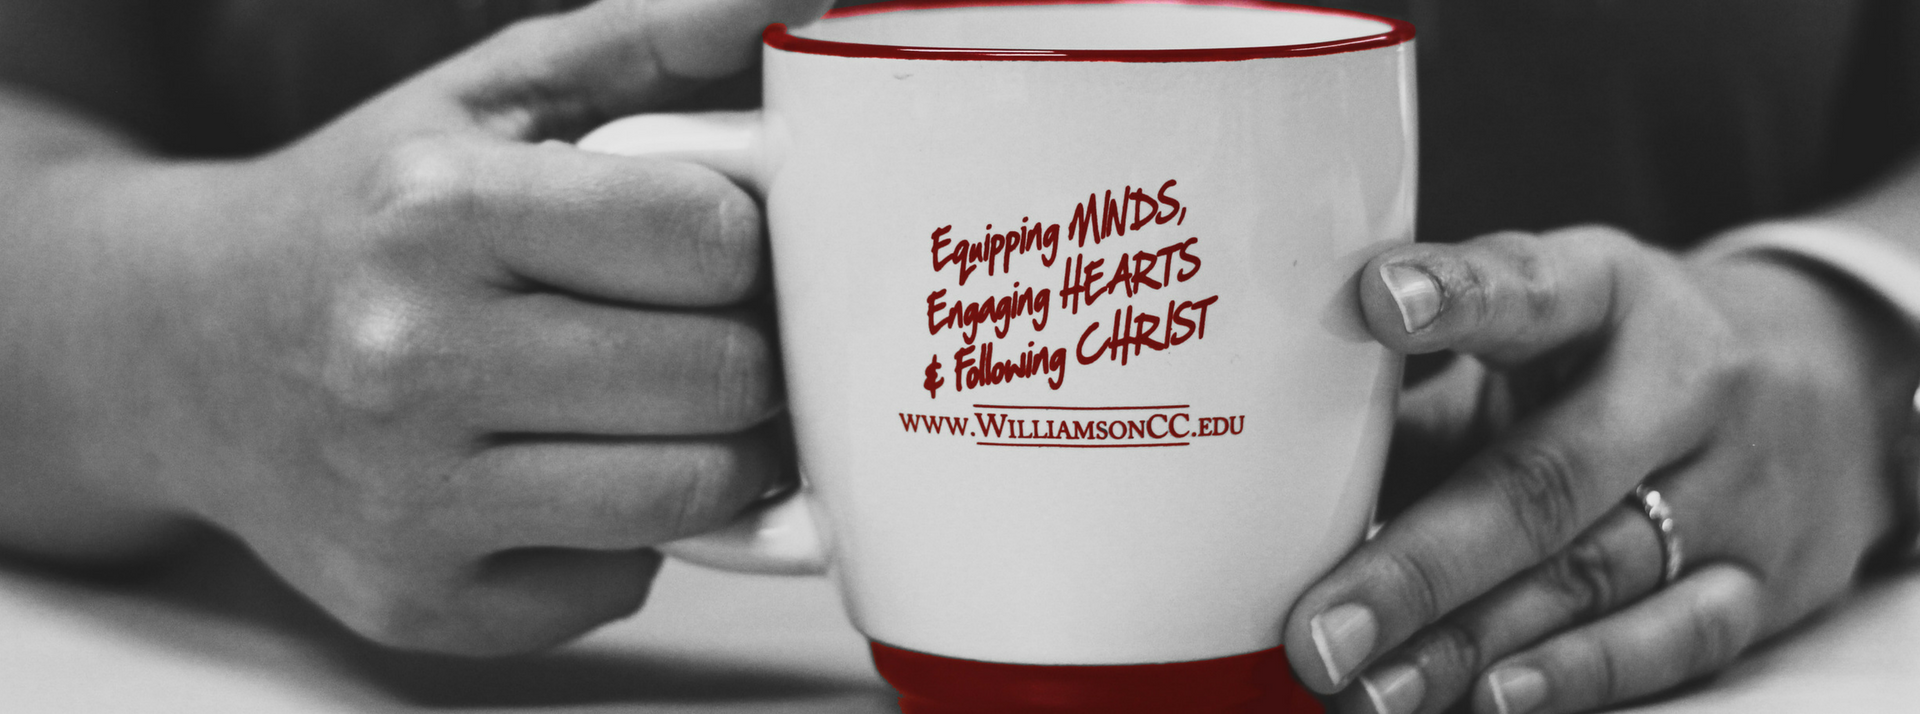 Williamson College proudly announces a new location . . .